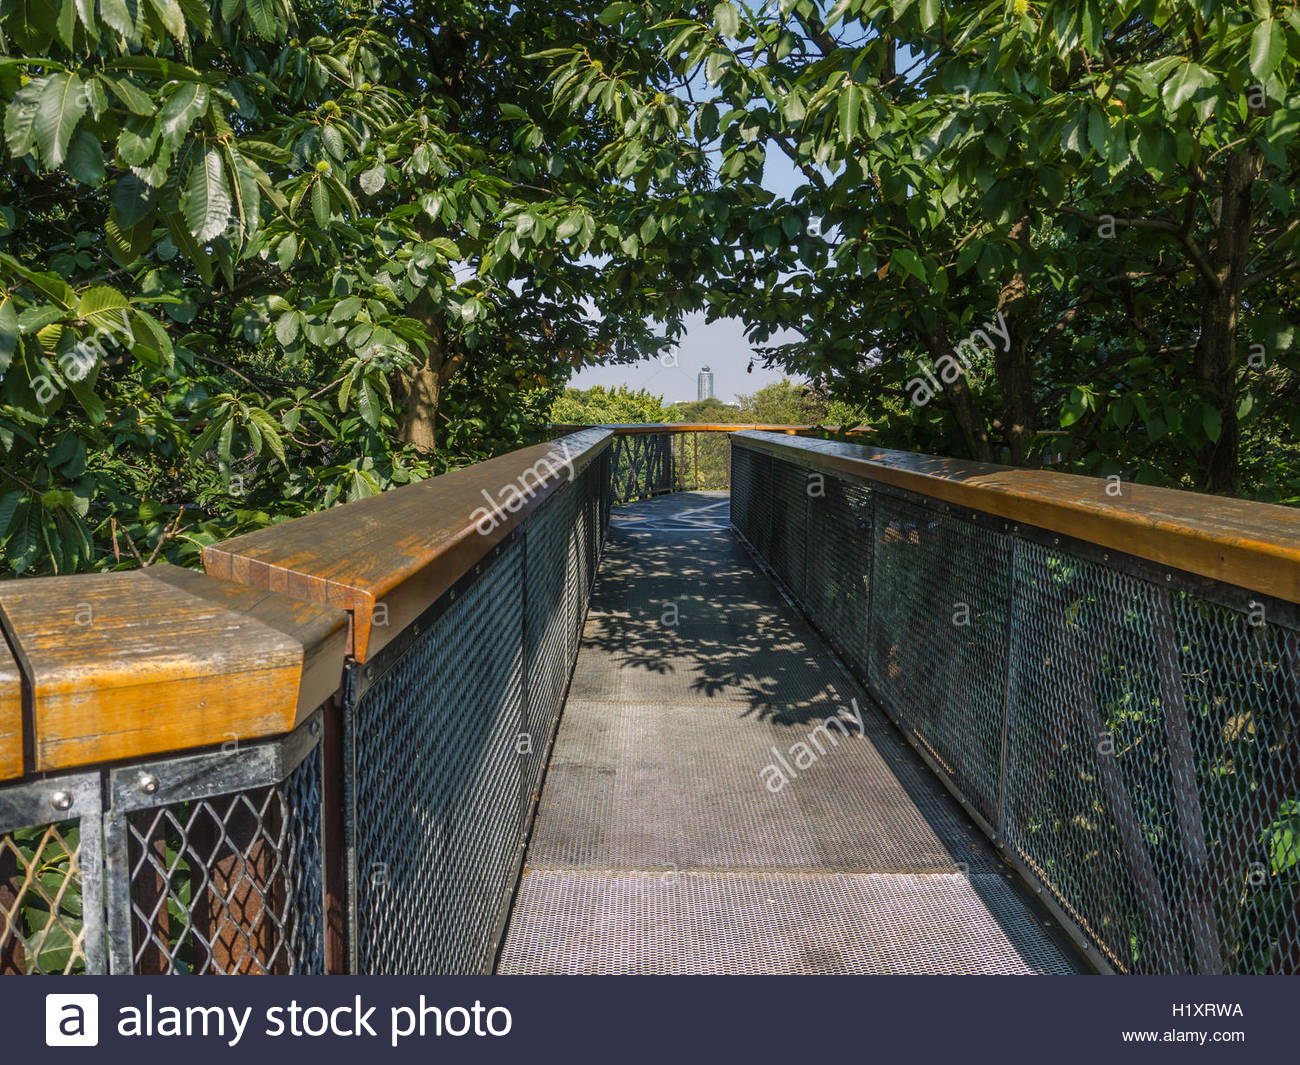 Kew Gardens Tree Top Walk Way Birds eye view of the canopy 18 metres high Oak Lime Chesnut trees Tower Block - Stock Image